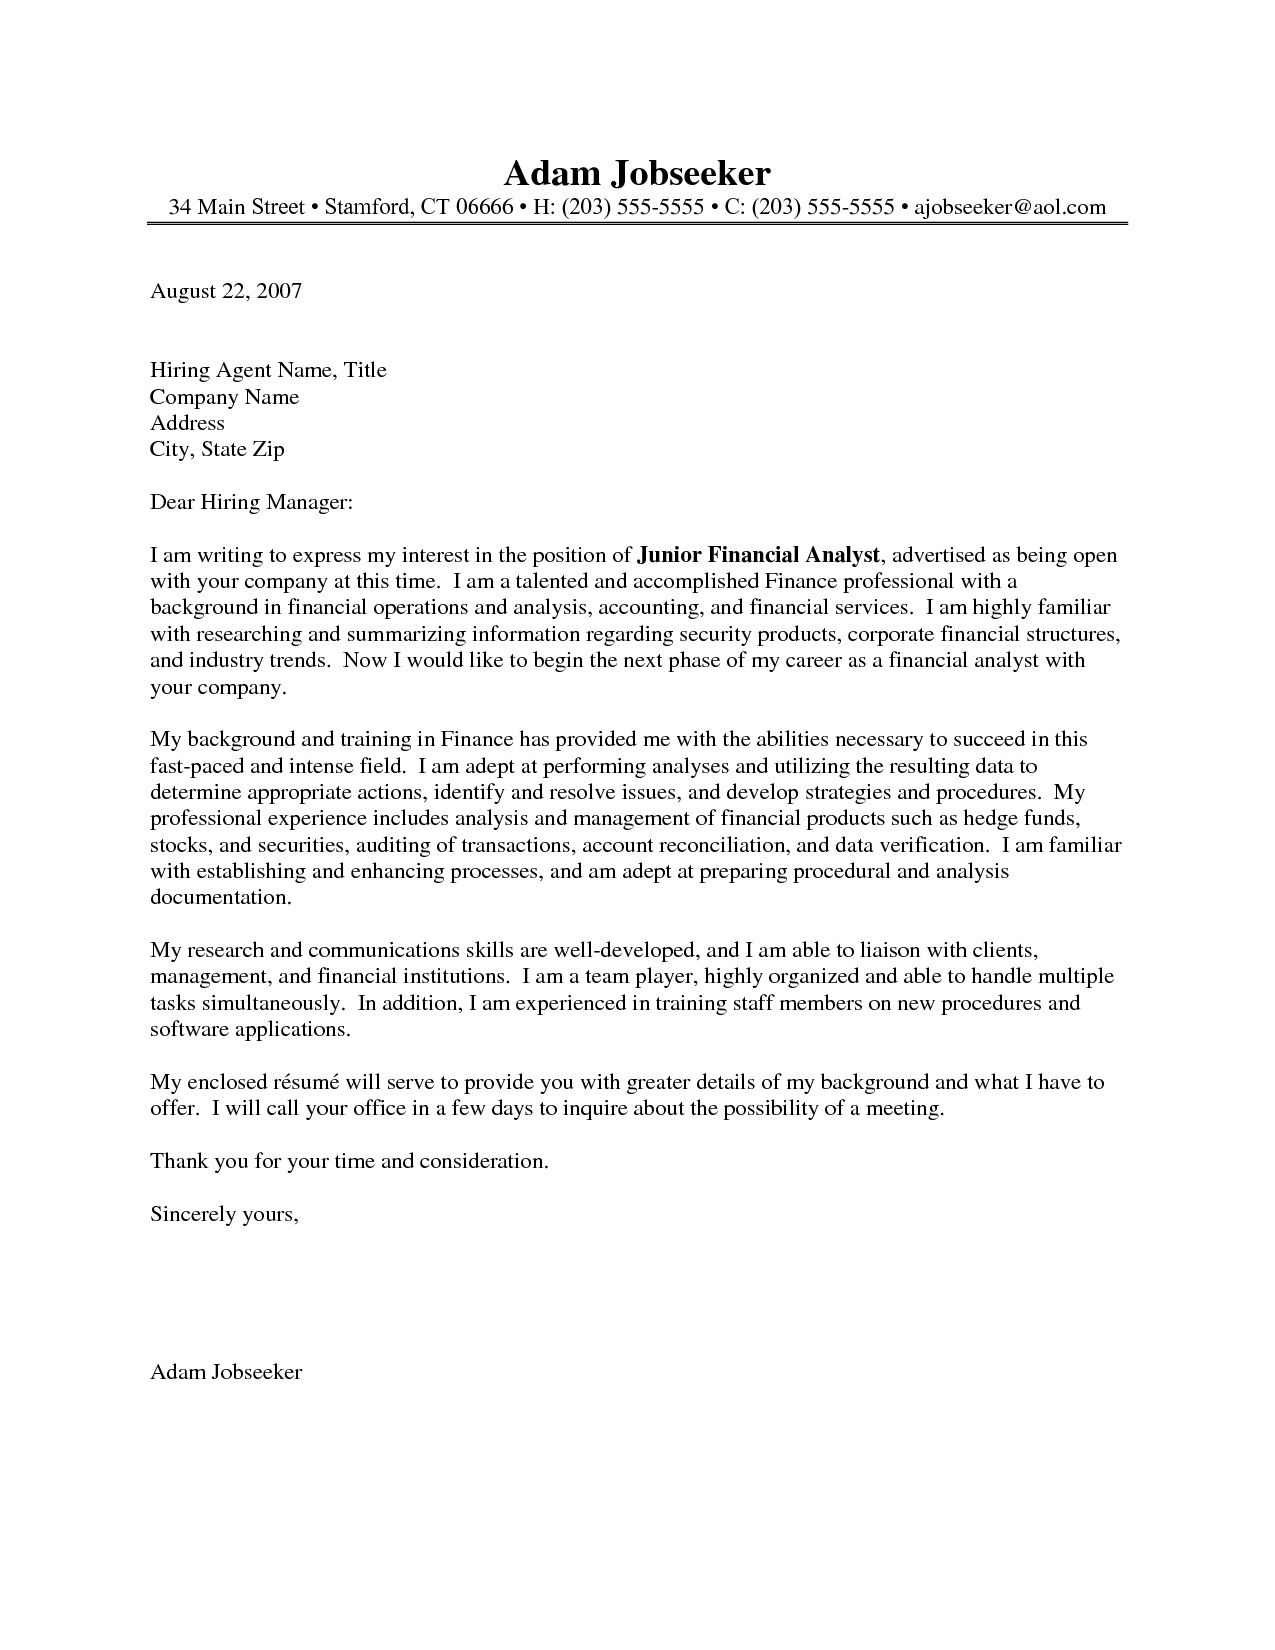 Financial Analyst Cover Letter Sample | mobile discoveries